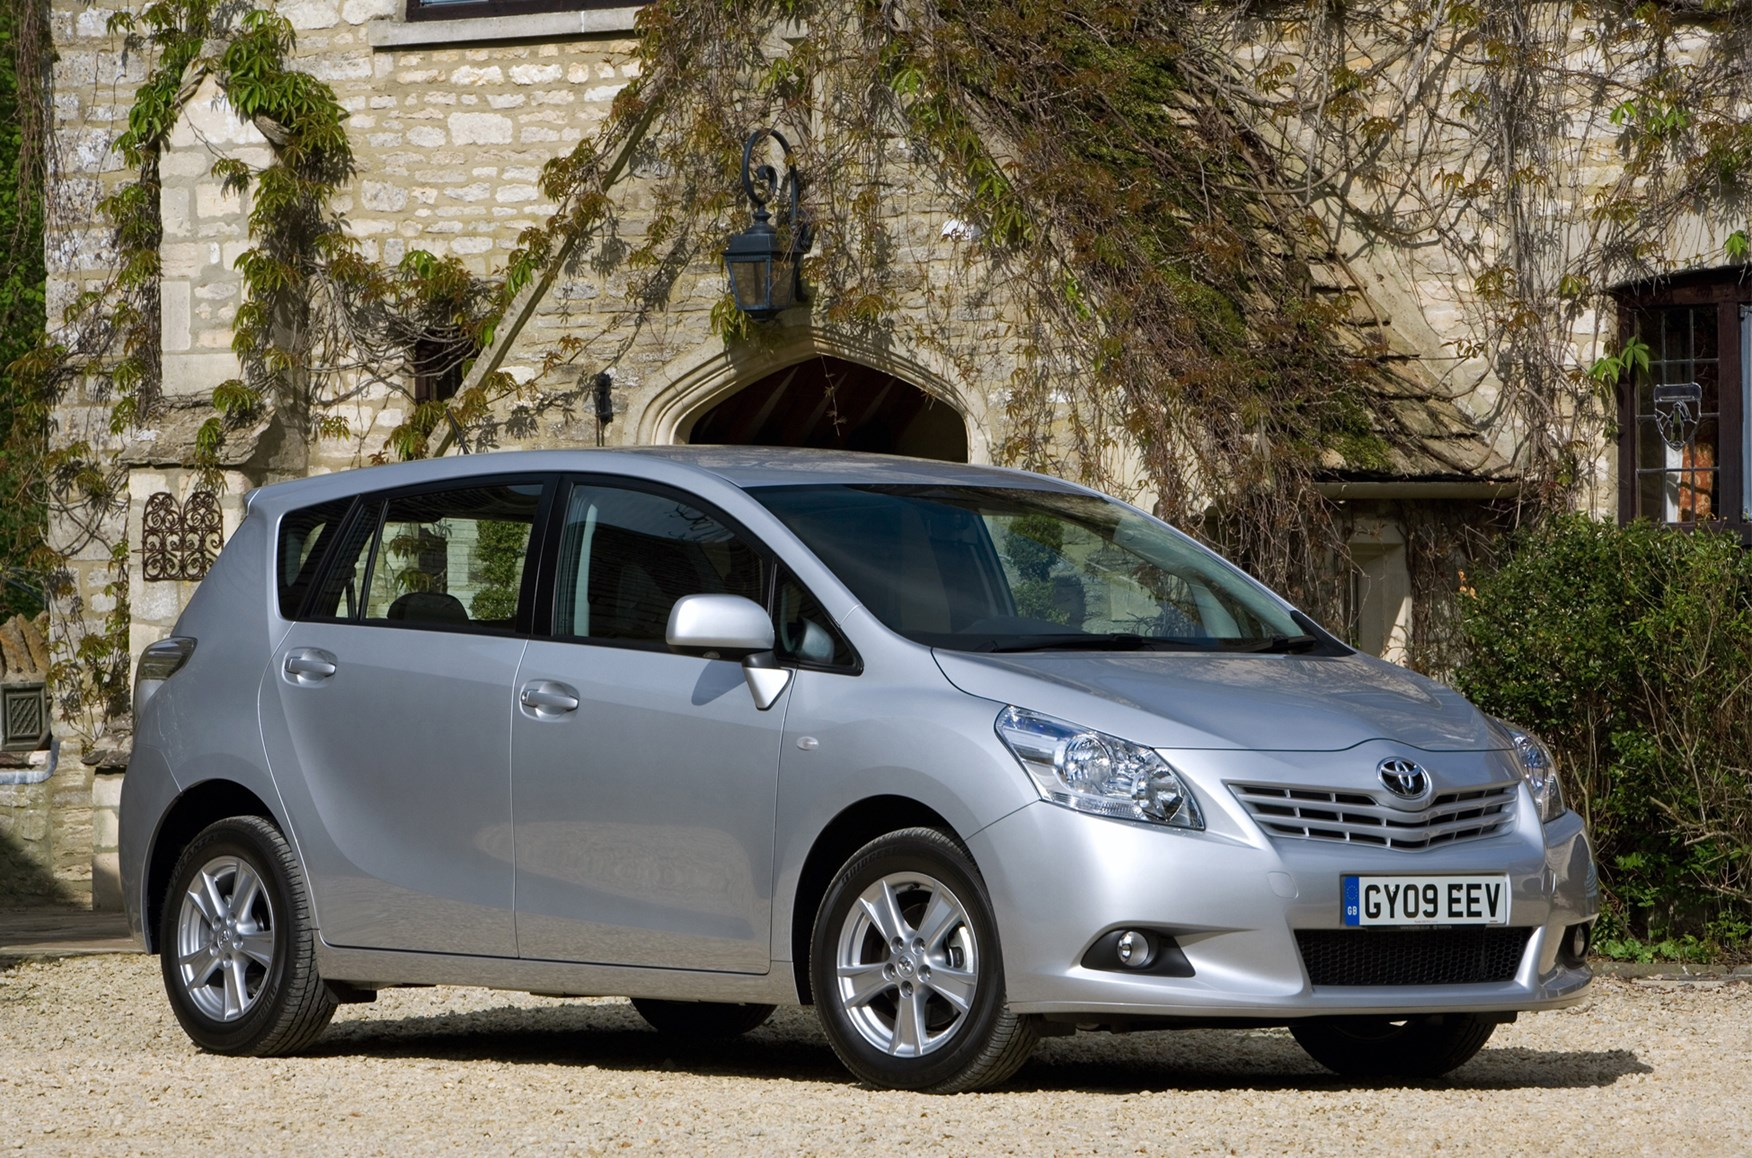 Used Toyota Verso Estate (2009 - 2018) MPG | Parkers